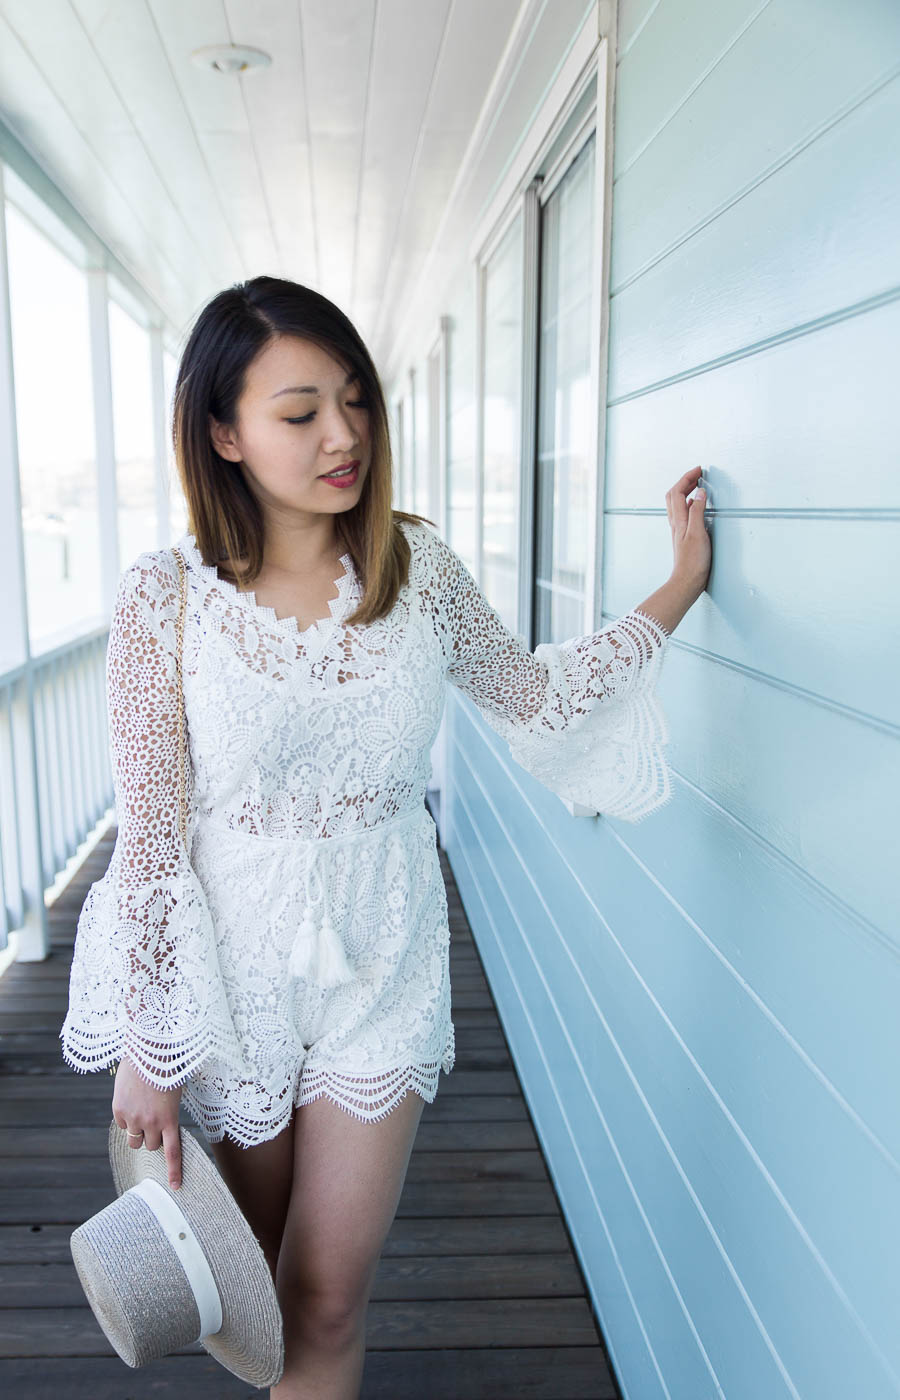 Garden Crochet Playsuit with Bell Sleeves 2 | The Chic Diary